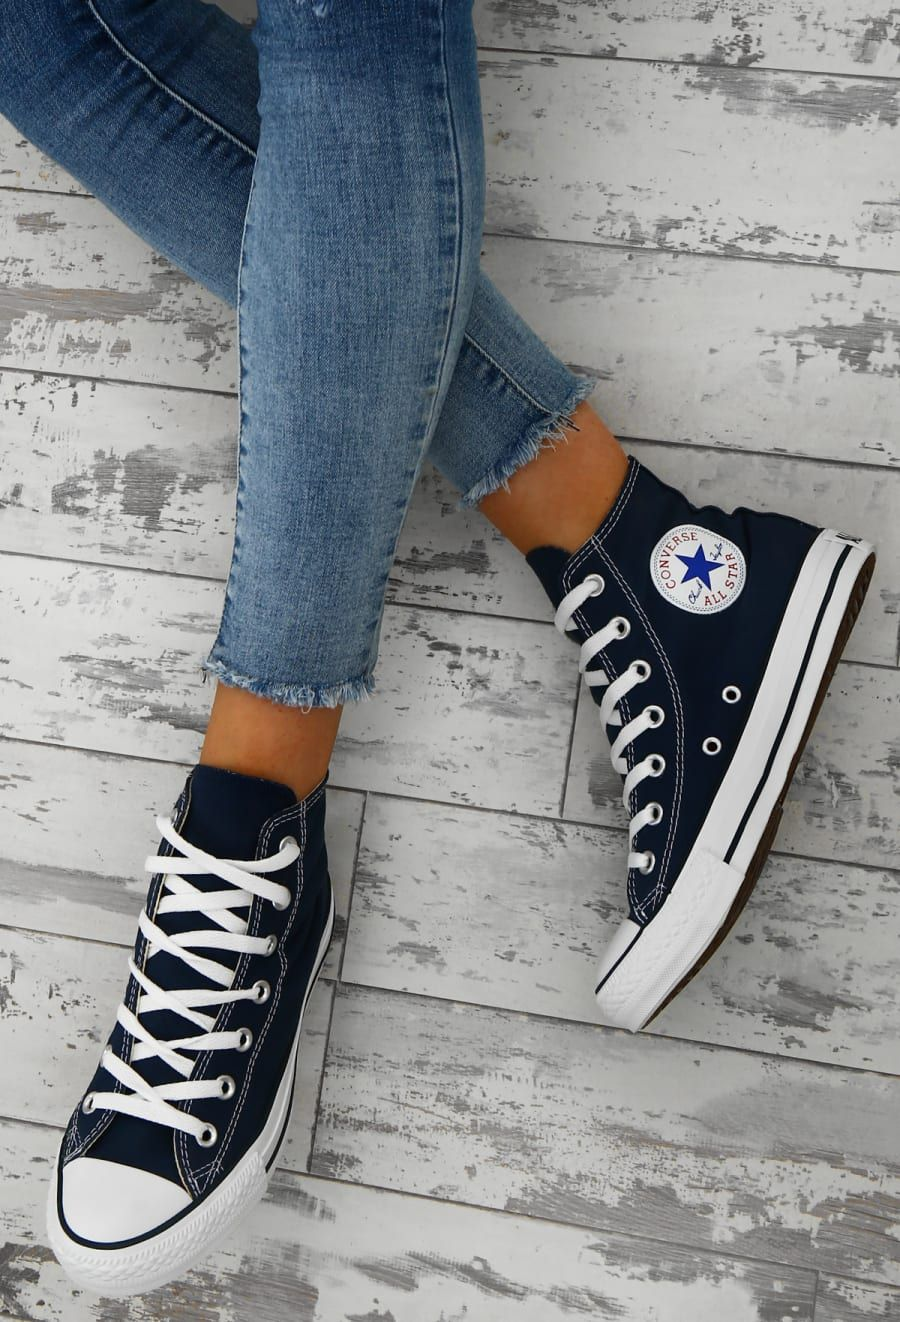 02778da6d8f4 Chuck Taylor Converse All Star Navy High Top Trainers - UK 3